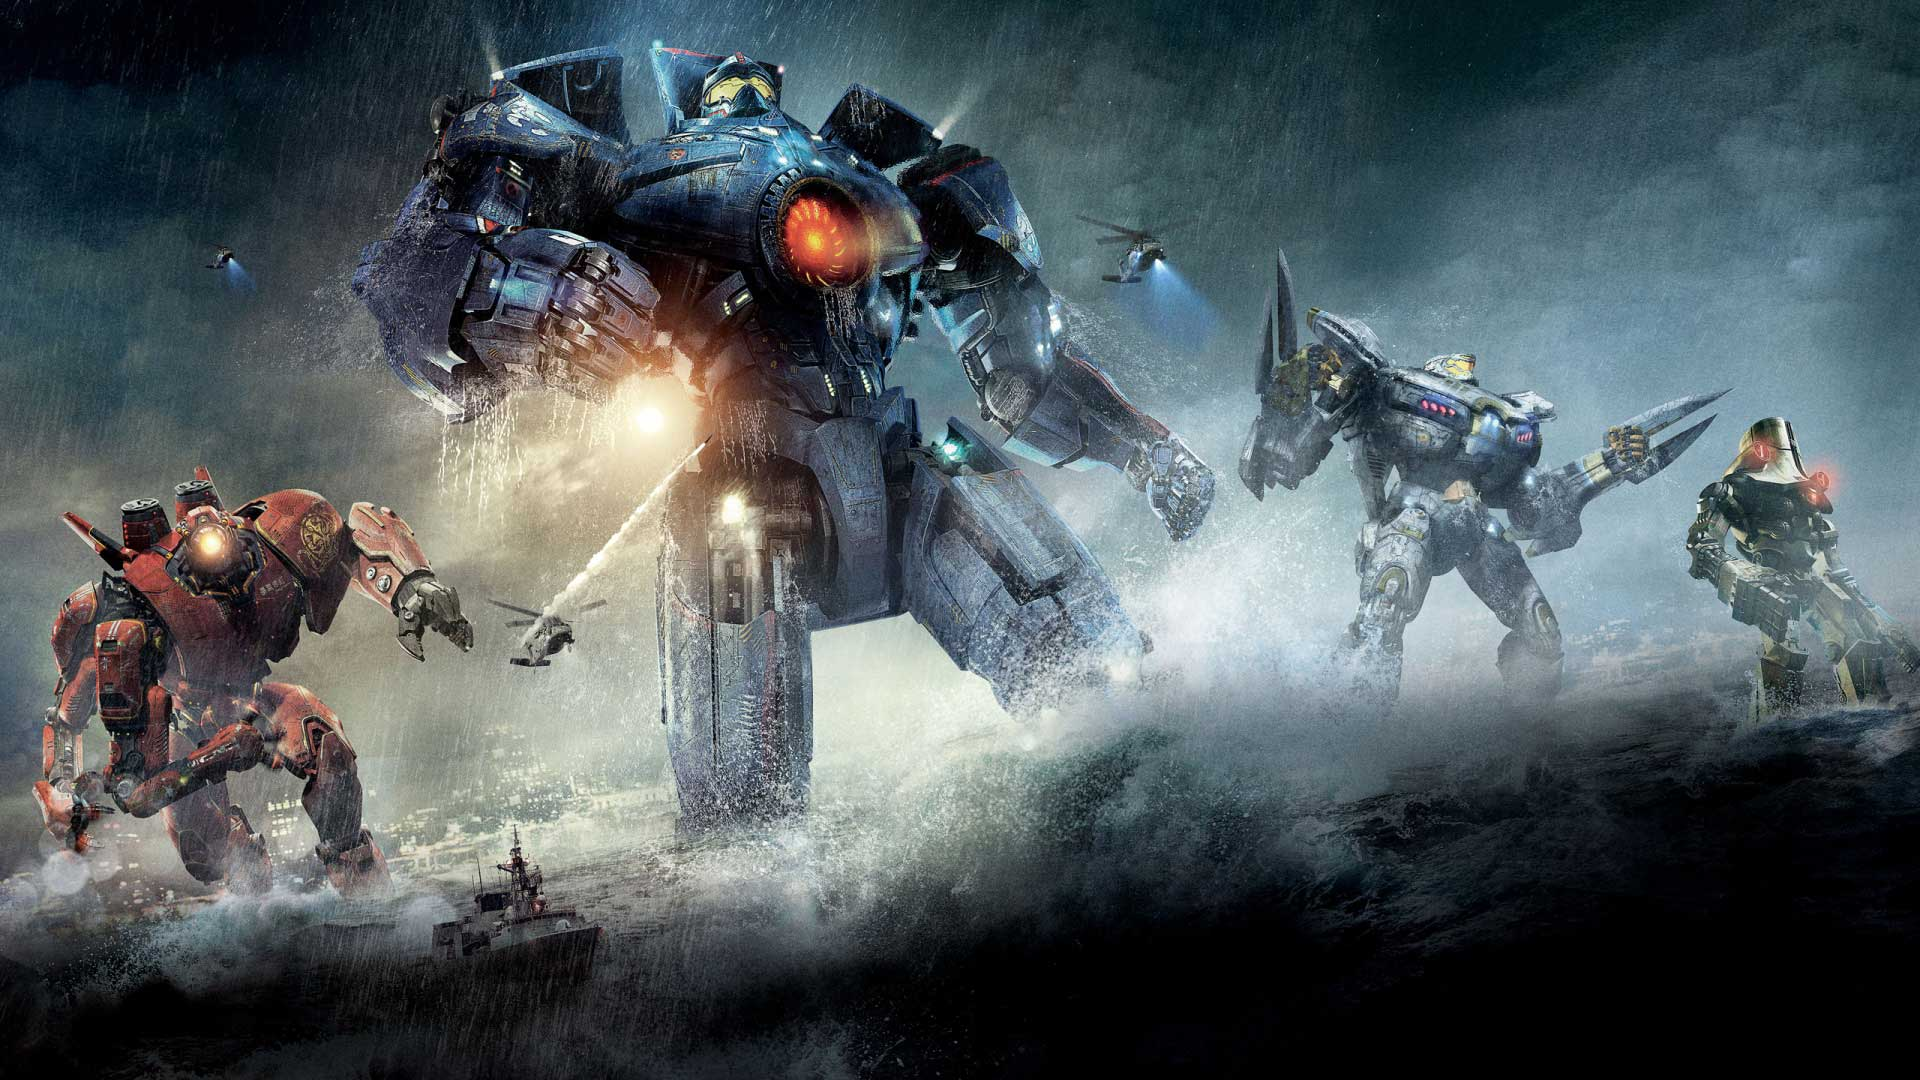 Movie Hd Wallpapers: HD Movie Wallpapers